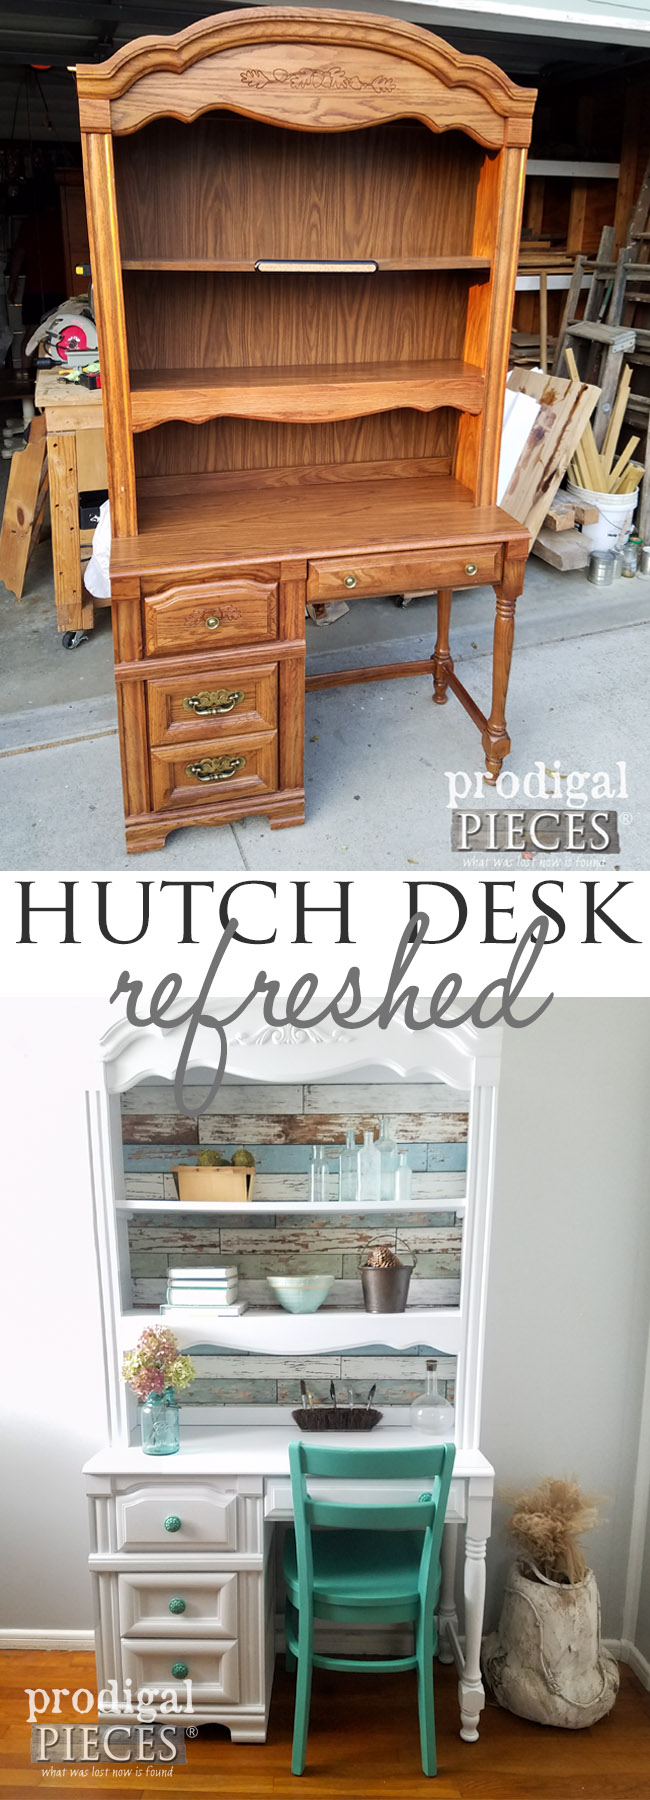 Oh my! This worn-out looking Broyhill hutch desk has never looked so good. See how easy it can be to update a dated piece with the help of Larissa at Prodigal Pieces | prodigalpieces.com